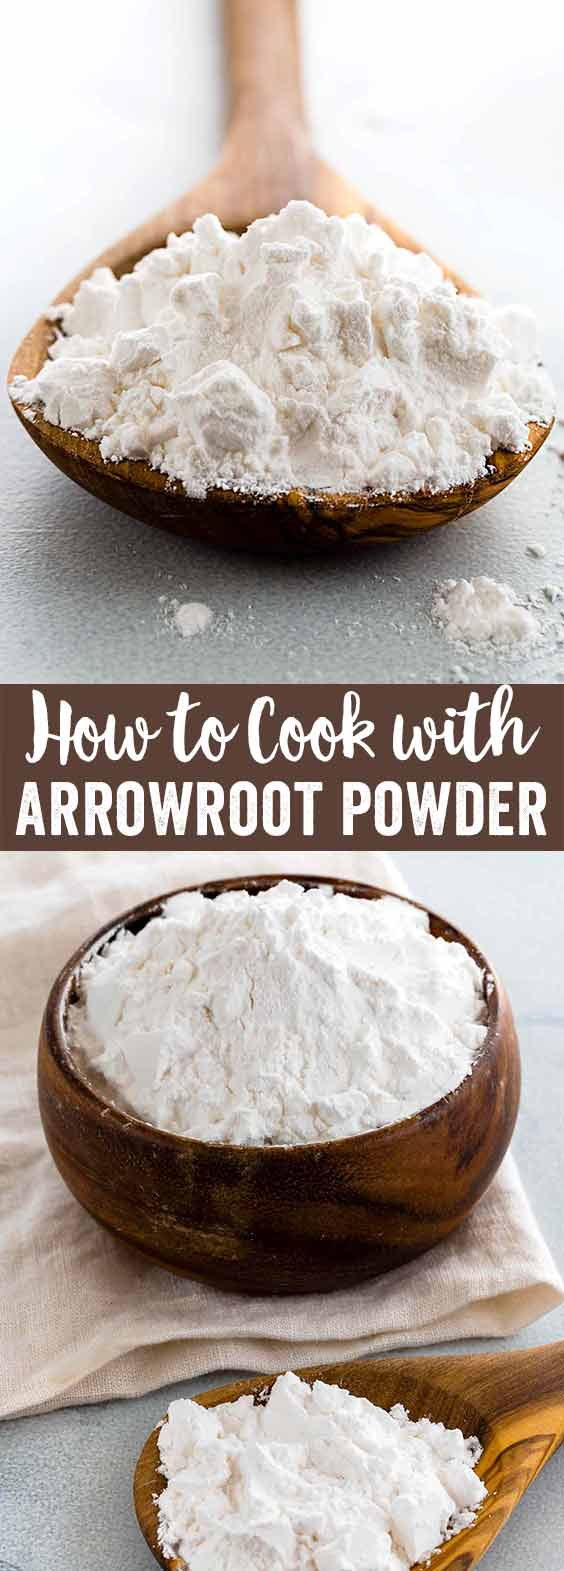 Arrowroot powder, also called flour or starch is an effective thickening agent used to add texture and structure in cooking and baking applications. Learn how this grain-free starch is used to thicken sauces, fillings and lighten up the texture of alternative flour baked goods.